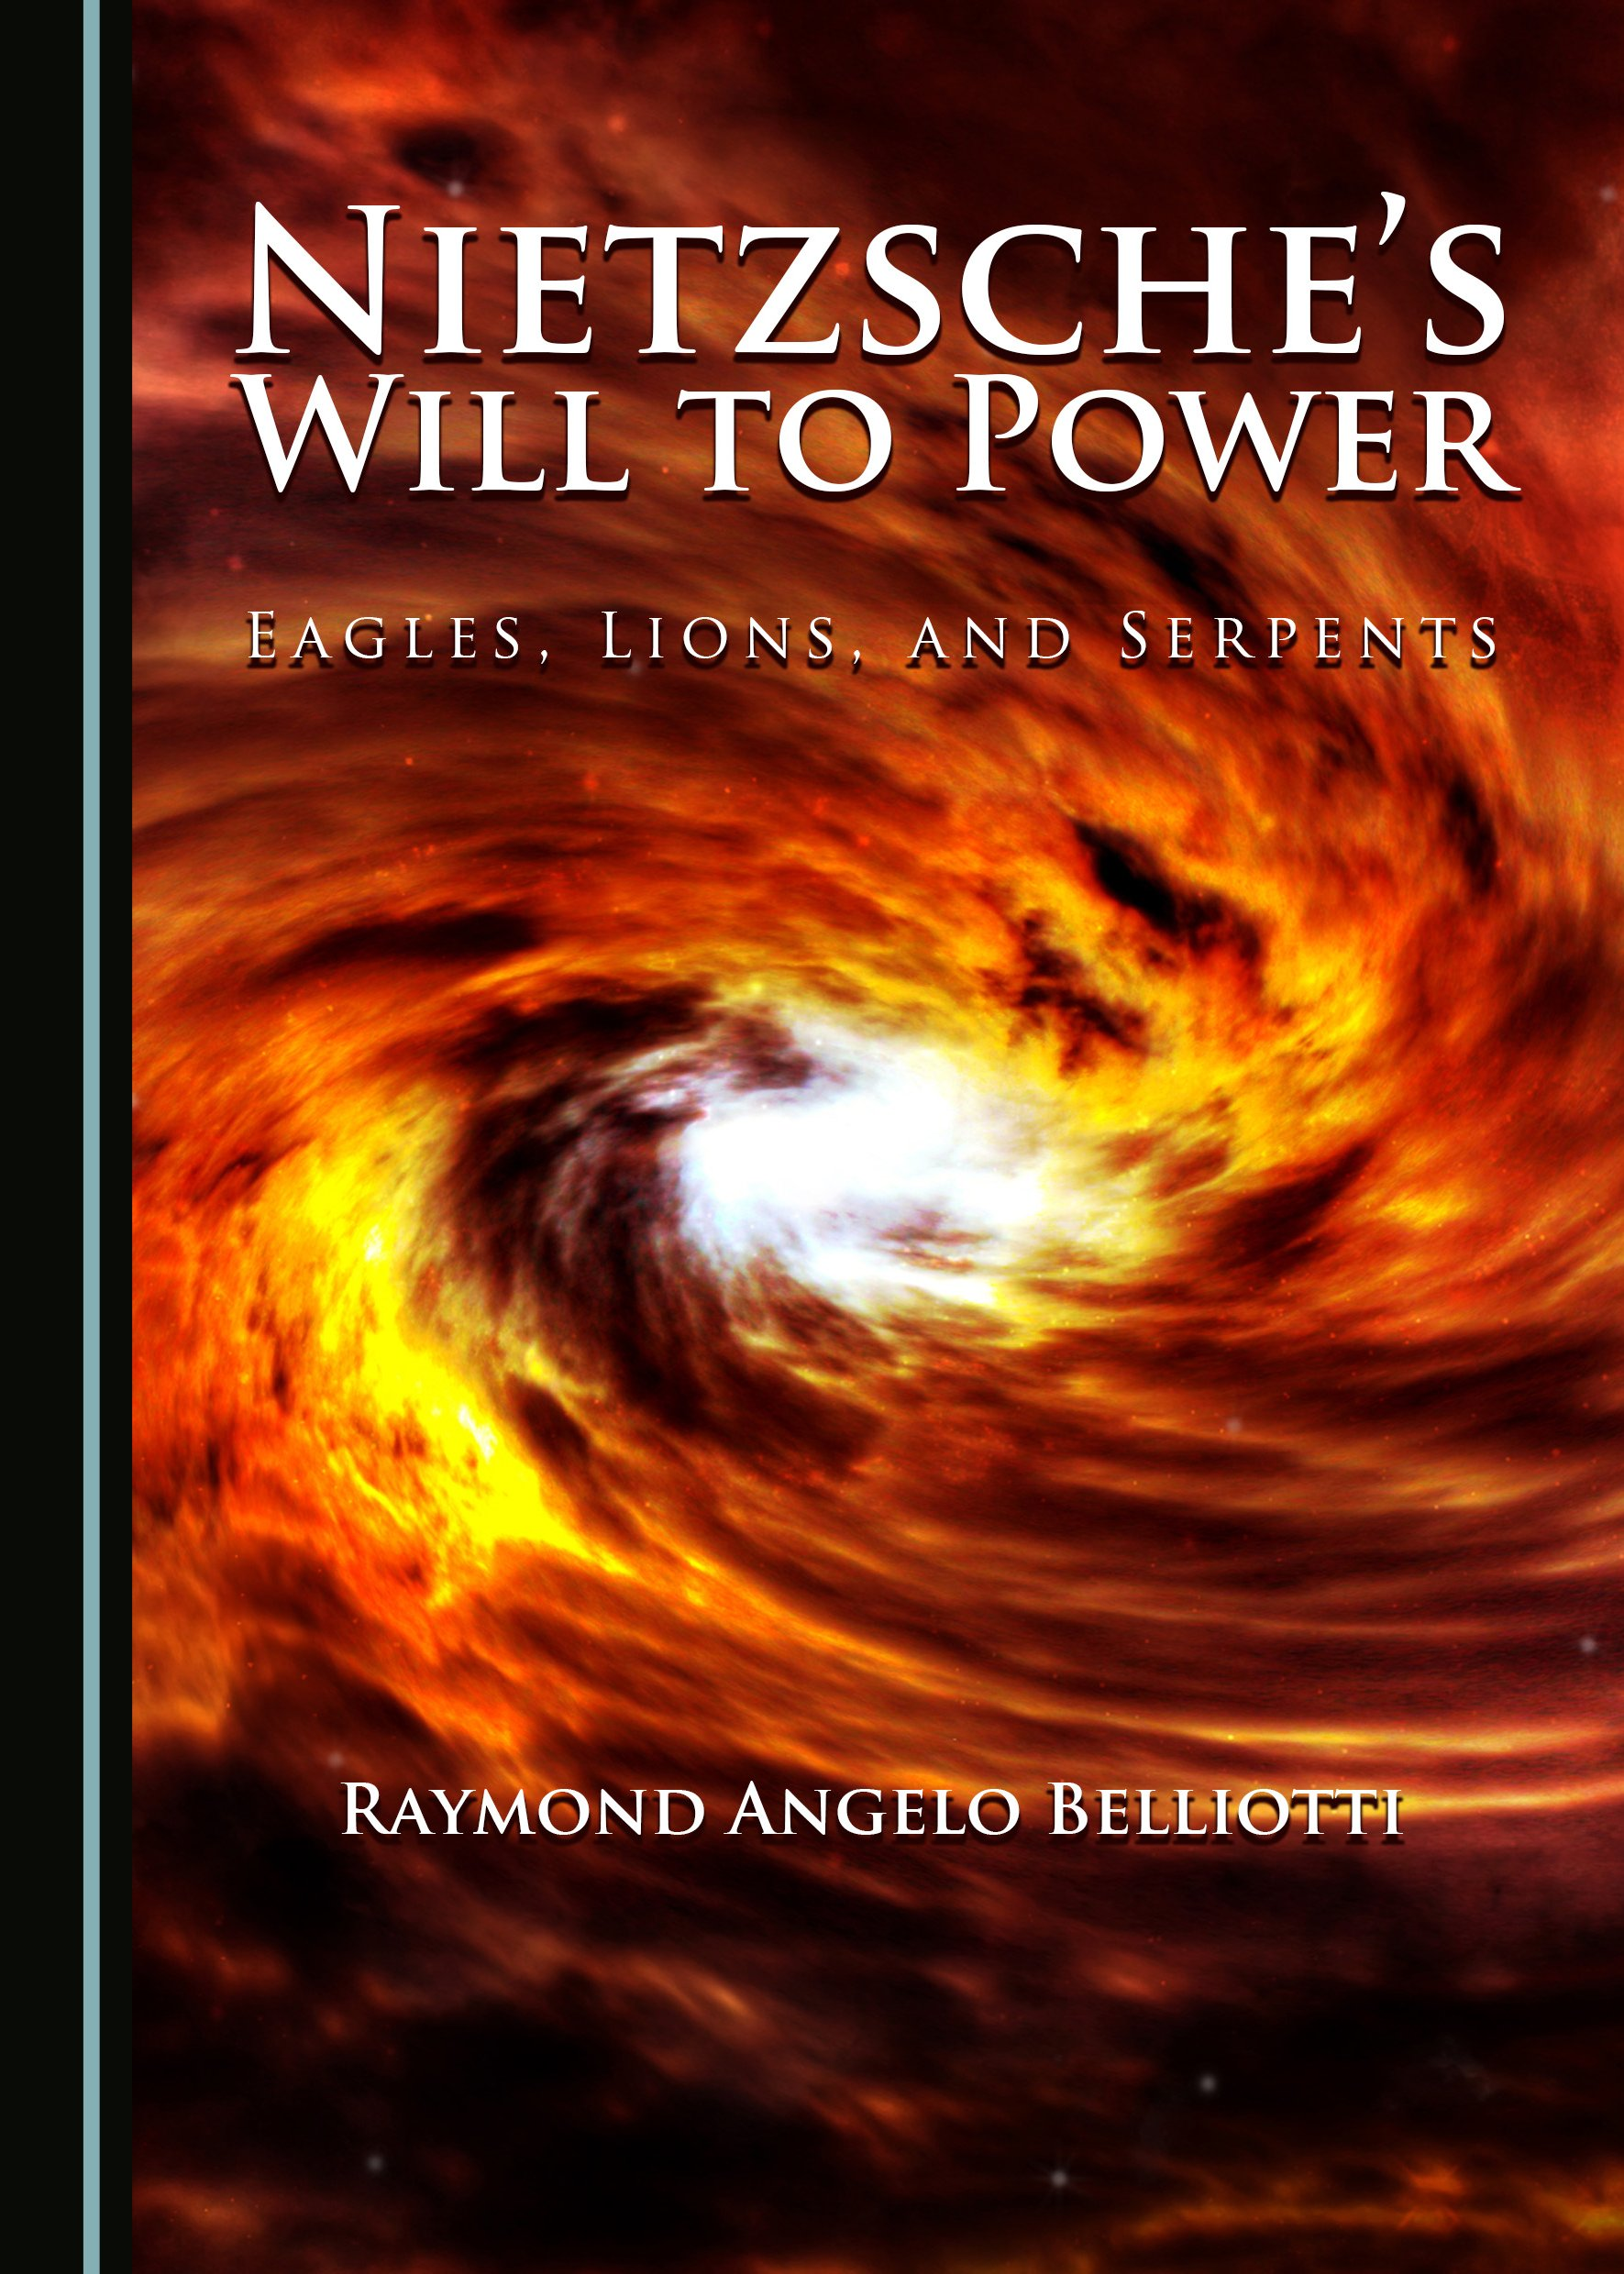 Nietzsche's Will to Power: Eagles, Lions, and Serpents